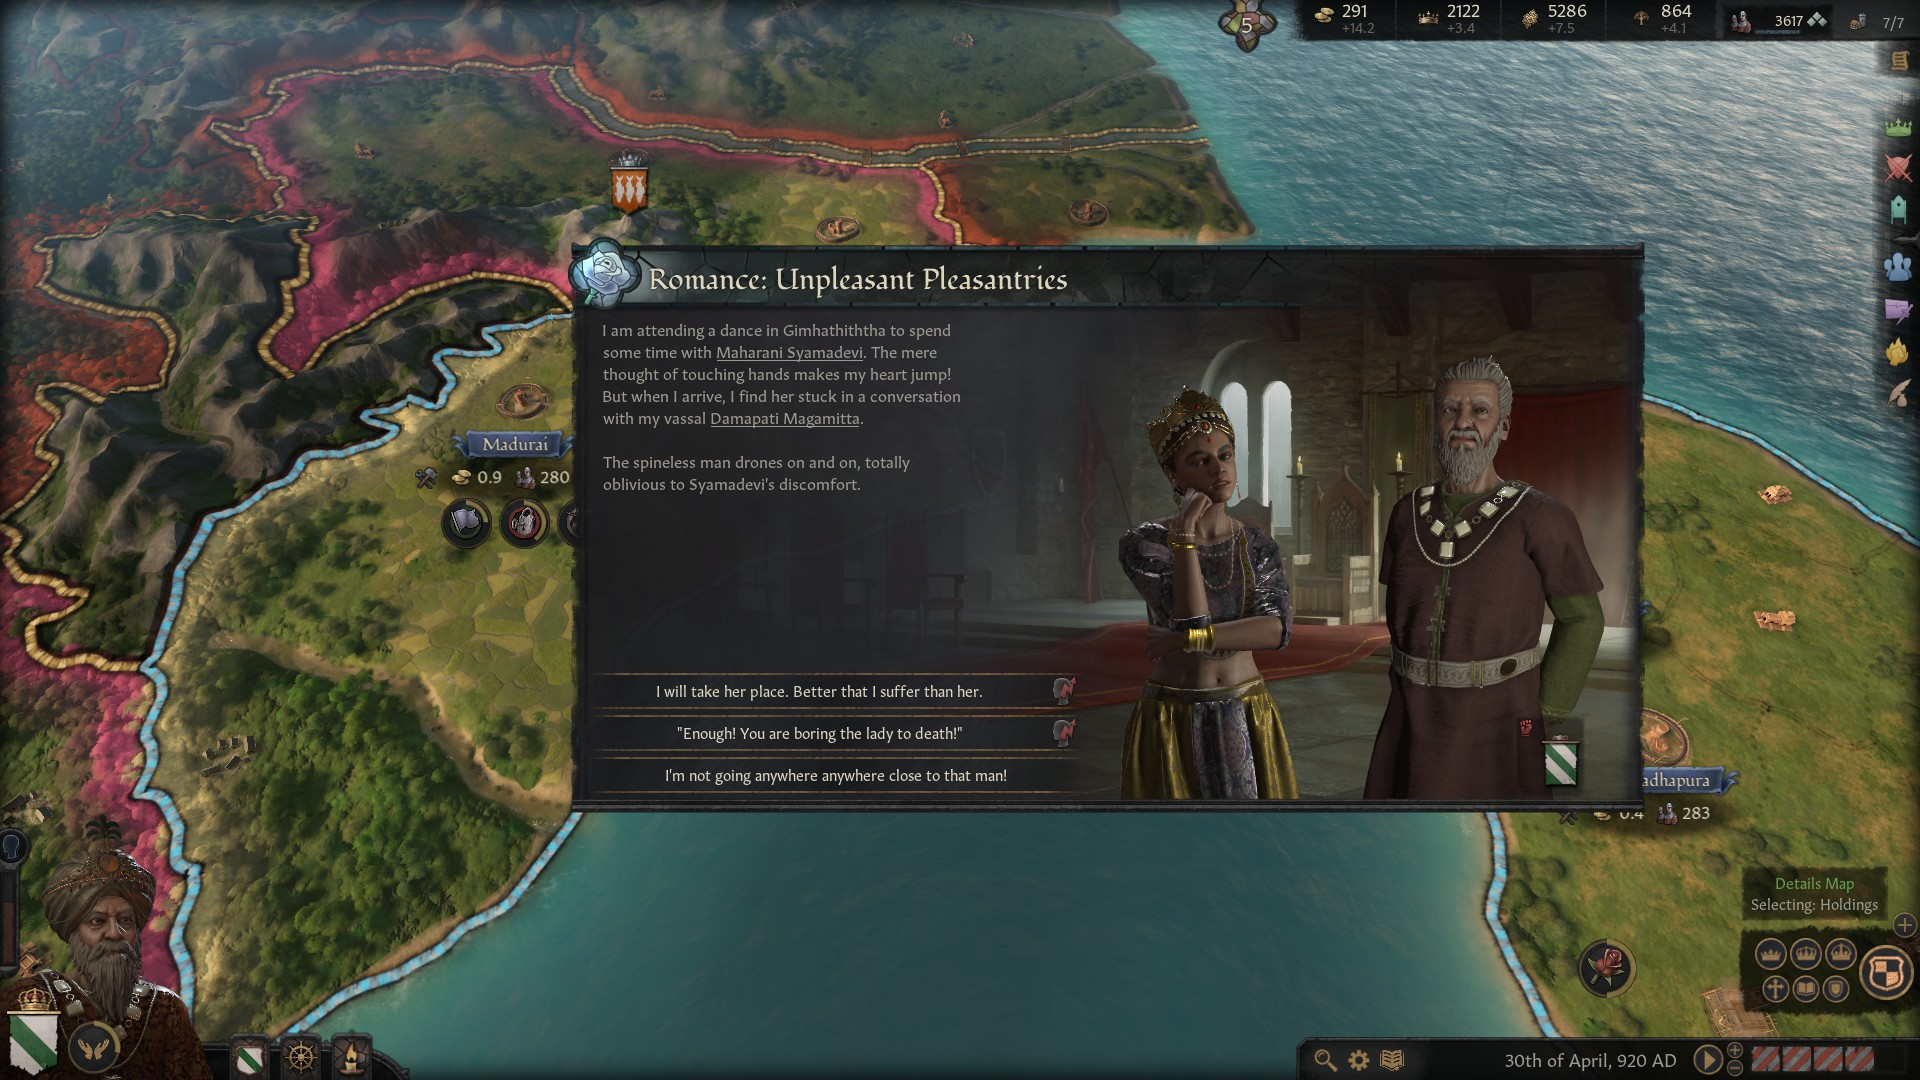 Crusader Kings III is out now, some reflections on the mediaeval mayhem